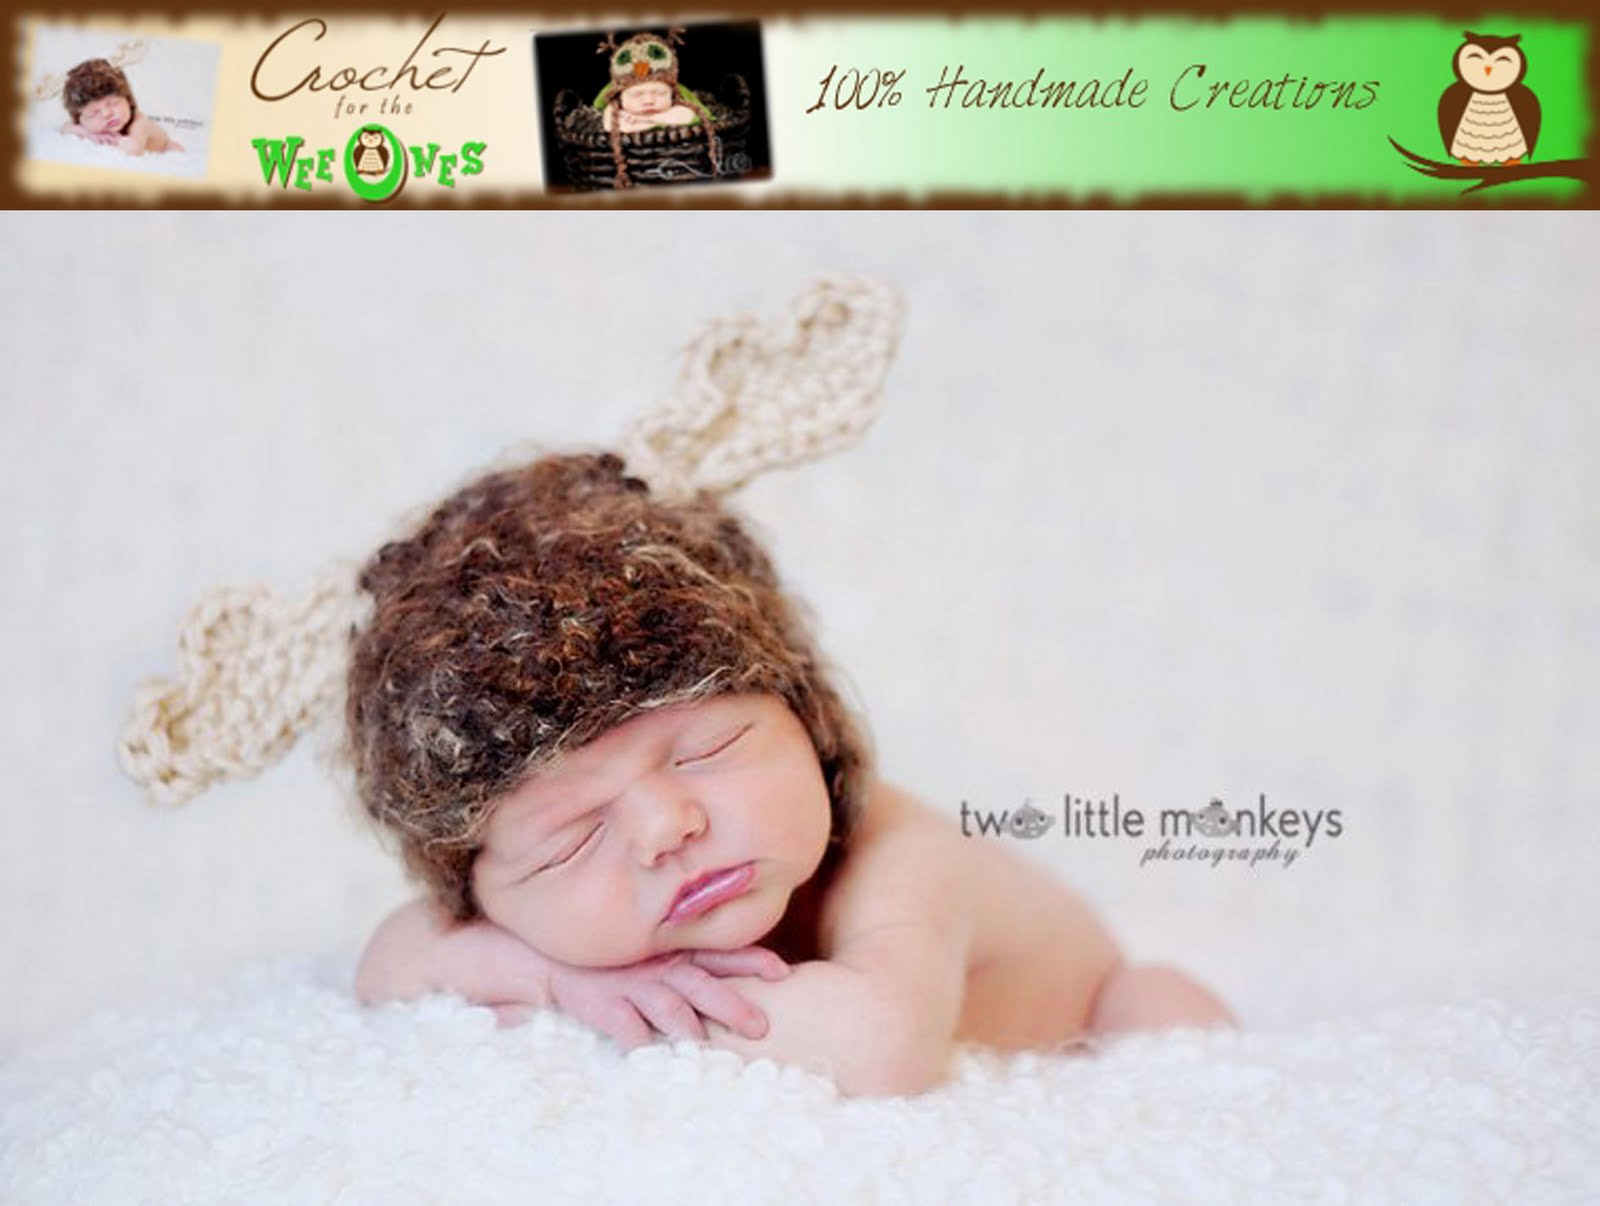 Erin's Toy Store: The Moose A Crochet Pattern by Erin Scull